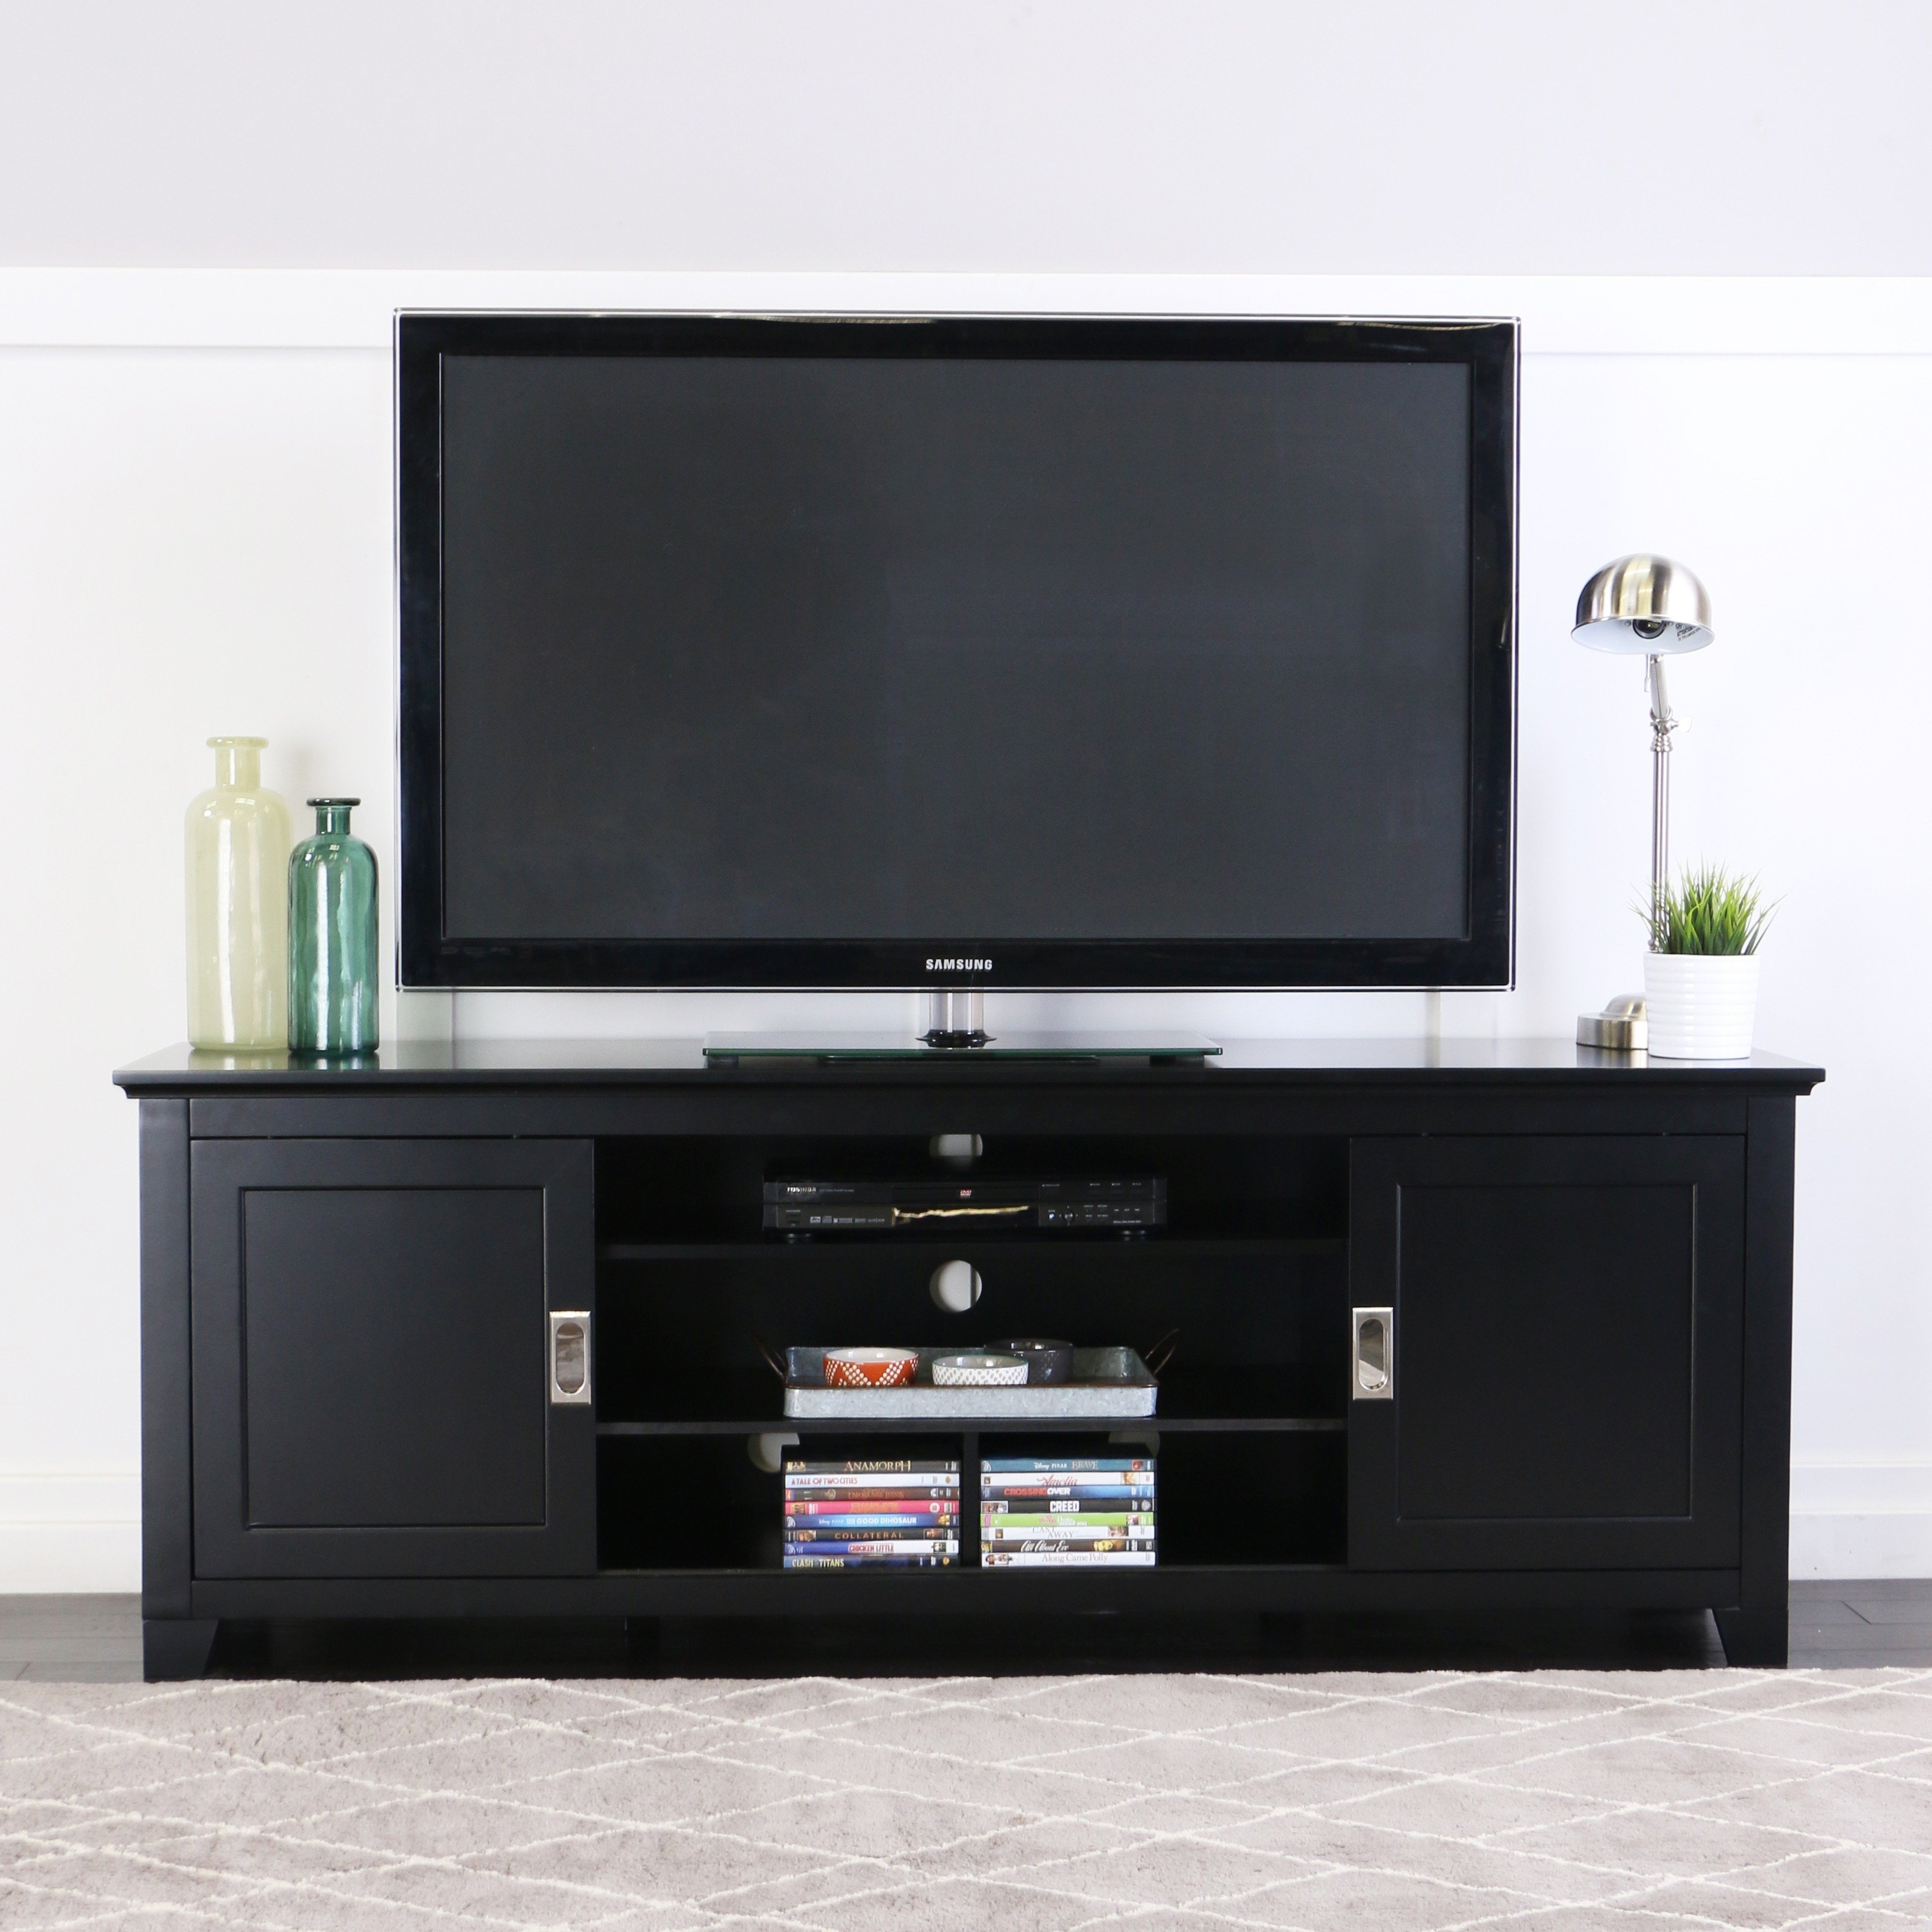 """Shop 70"""" Tv Stand Console With Sliding Doors - Black - 70 X 18 X 25H in Century Sky 60 Inch Tv Stands (Image 23 of 30)"""